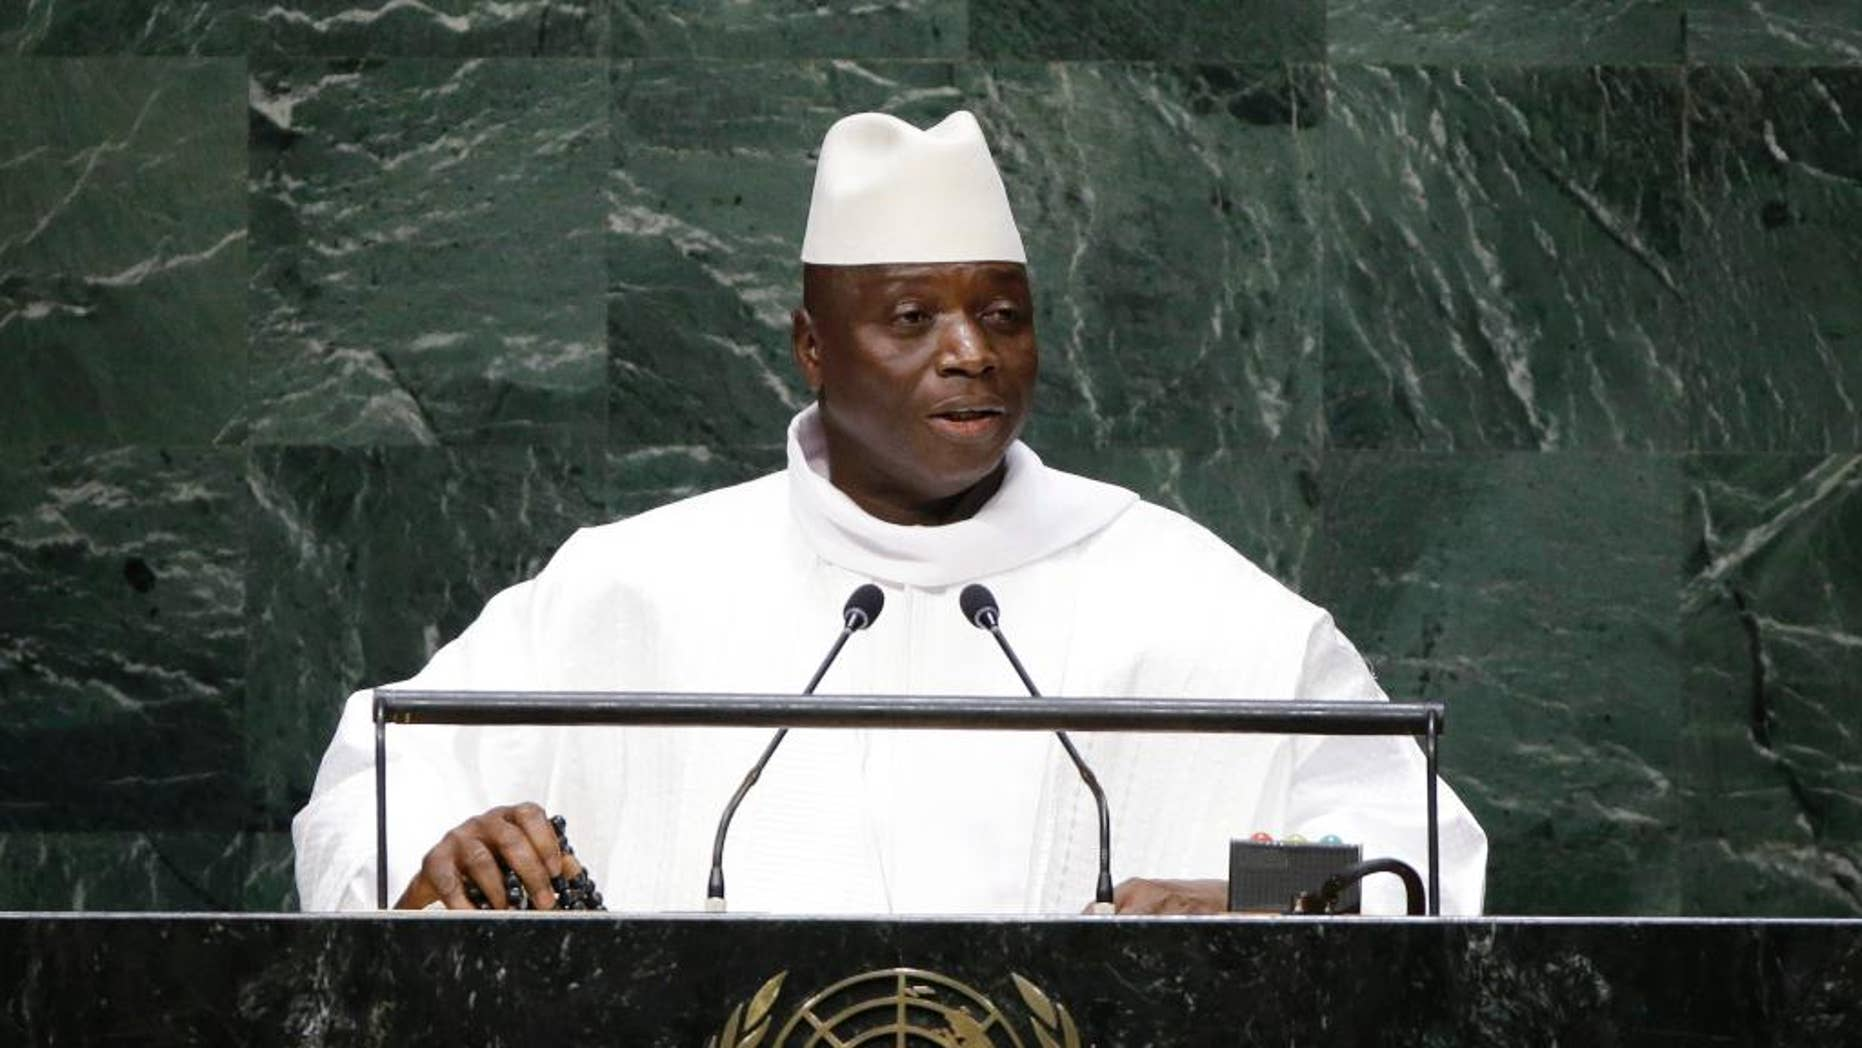 """FILE - In this Sept. 25, 2014, file photo, Gambia's President Yahya Jammeh addresses the 69th session of the United Nations General Assembly at the United Nations headquarters. A third African country, Gambia, says it will leave the International Criminal Court as fears grow of a mass pullout from the body that pursues some of the world's worst atrocities. Gambia announced the decision on television Tuesday, Oct. 25, 2016, accusing the court of unfairly targeting Africa and calling it the """"International Caucasian Court."""" (AP Photo/Frank Franklin II, File)"""